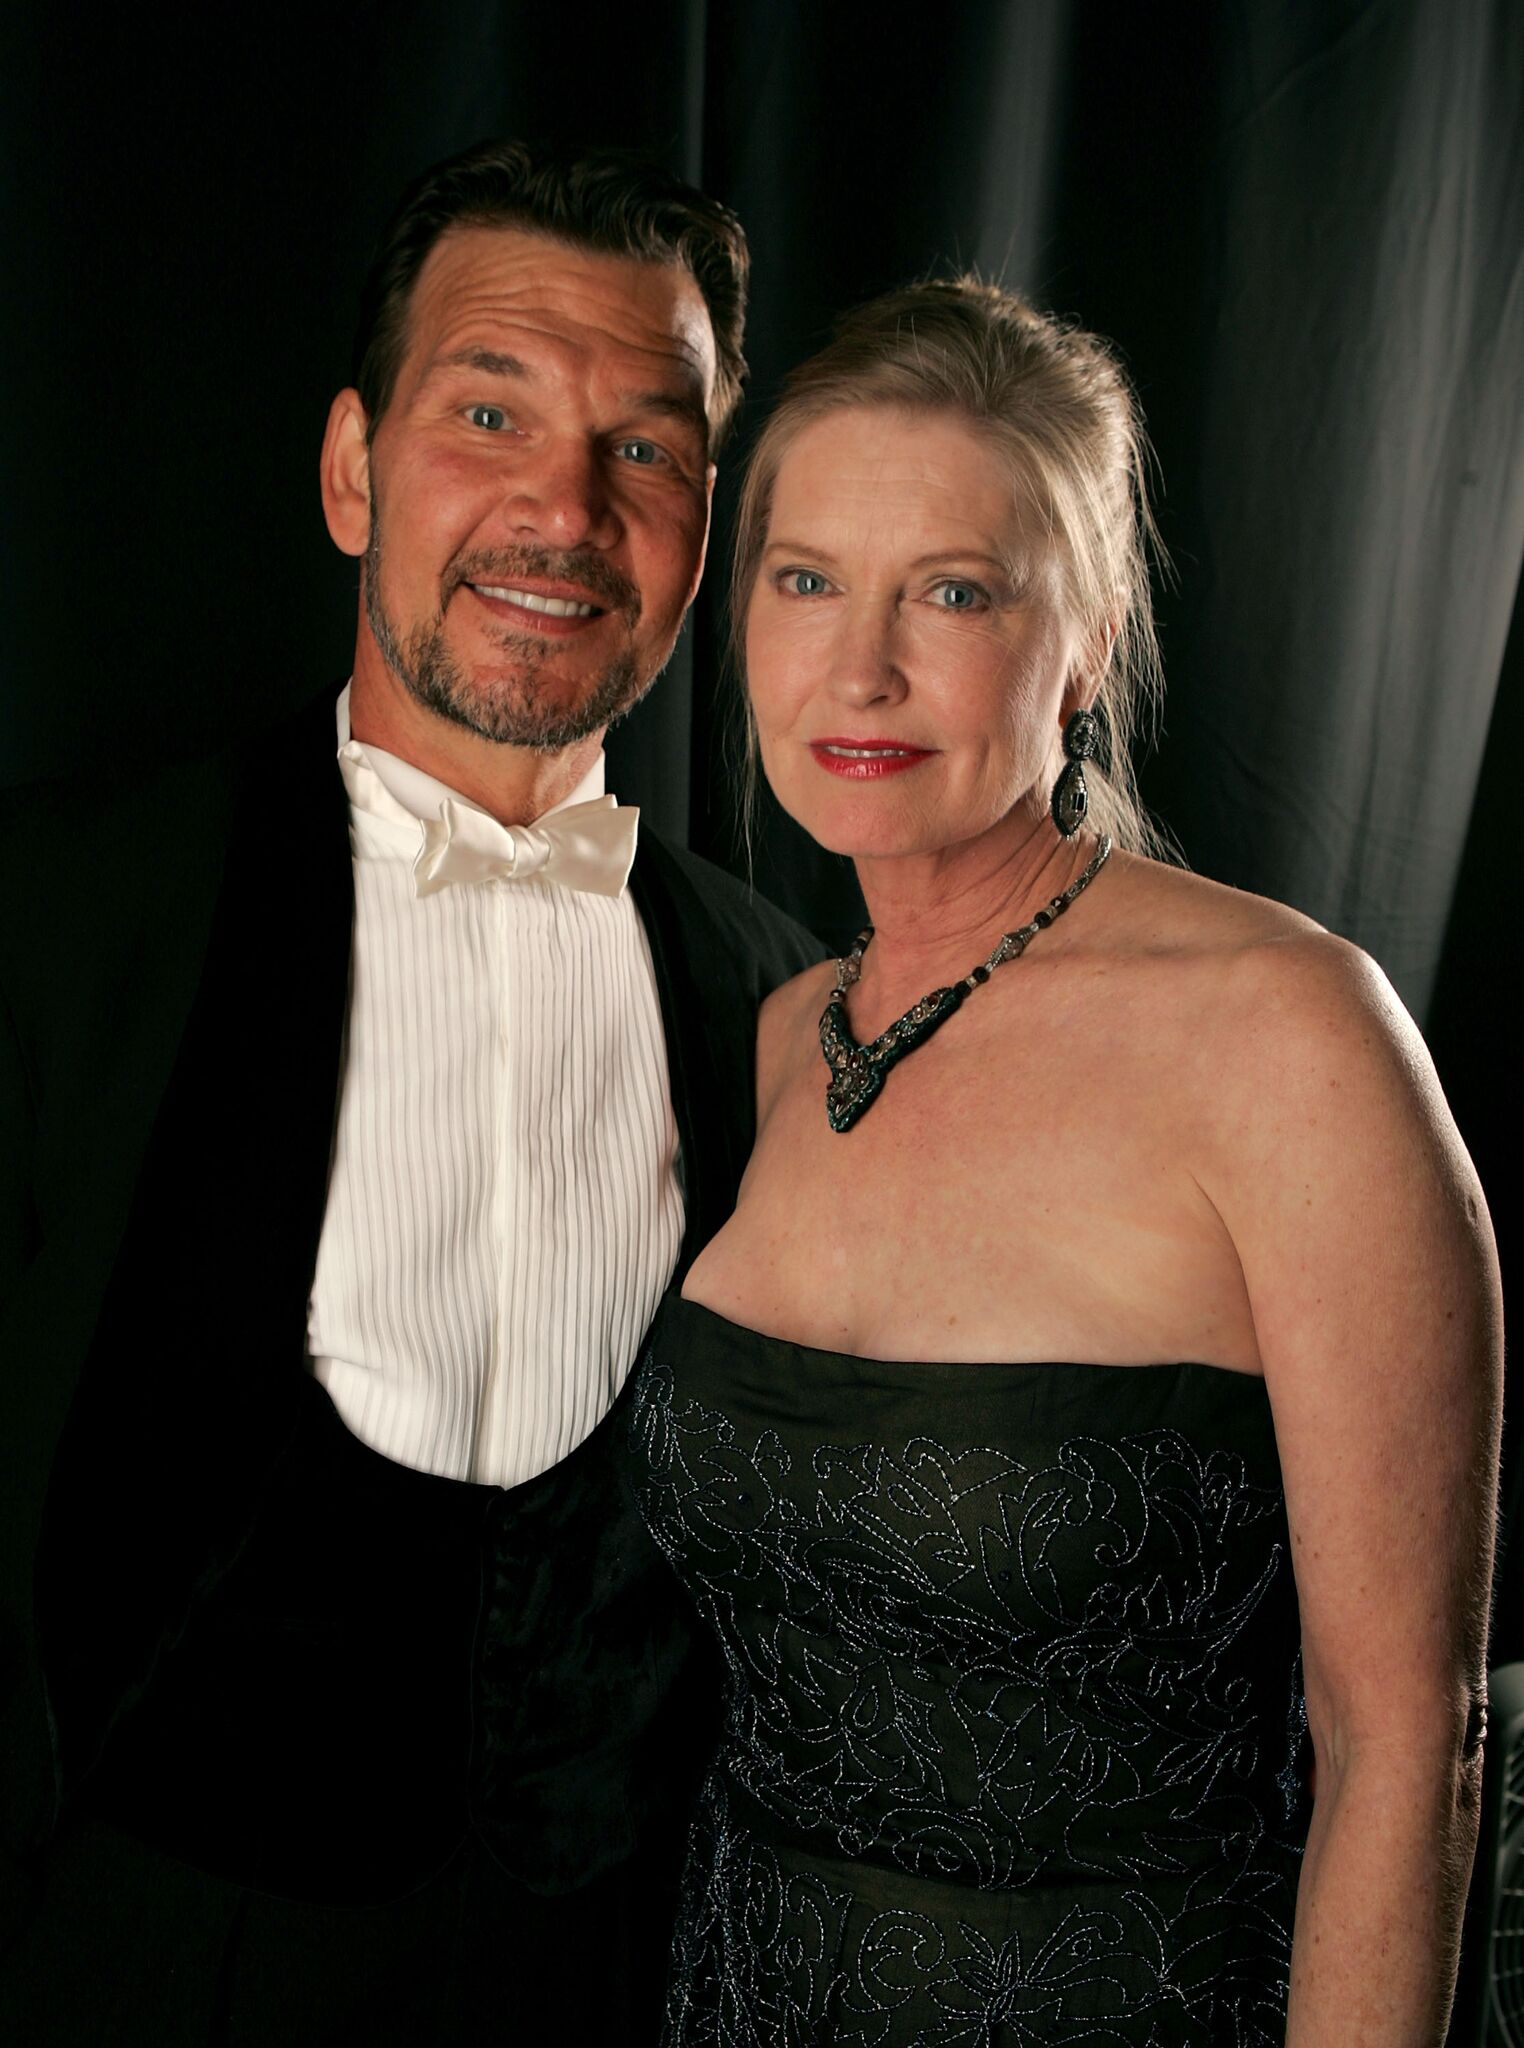 Patrick Swayze and wife Lisa Niemi at the 9th annual Costume Designers Guild Awards in 2007 | Getty Images